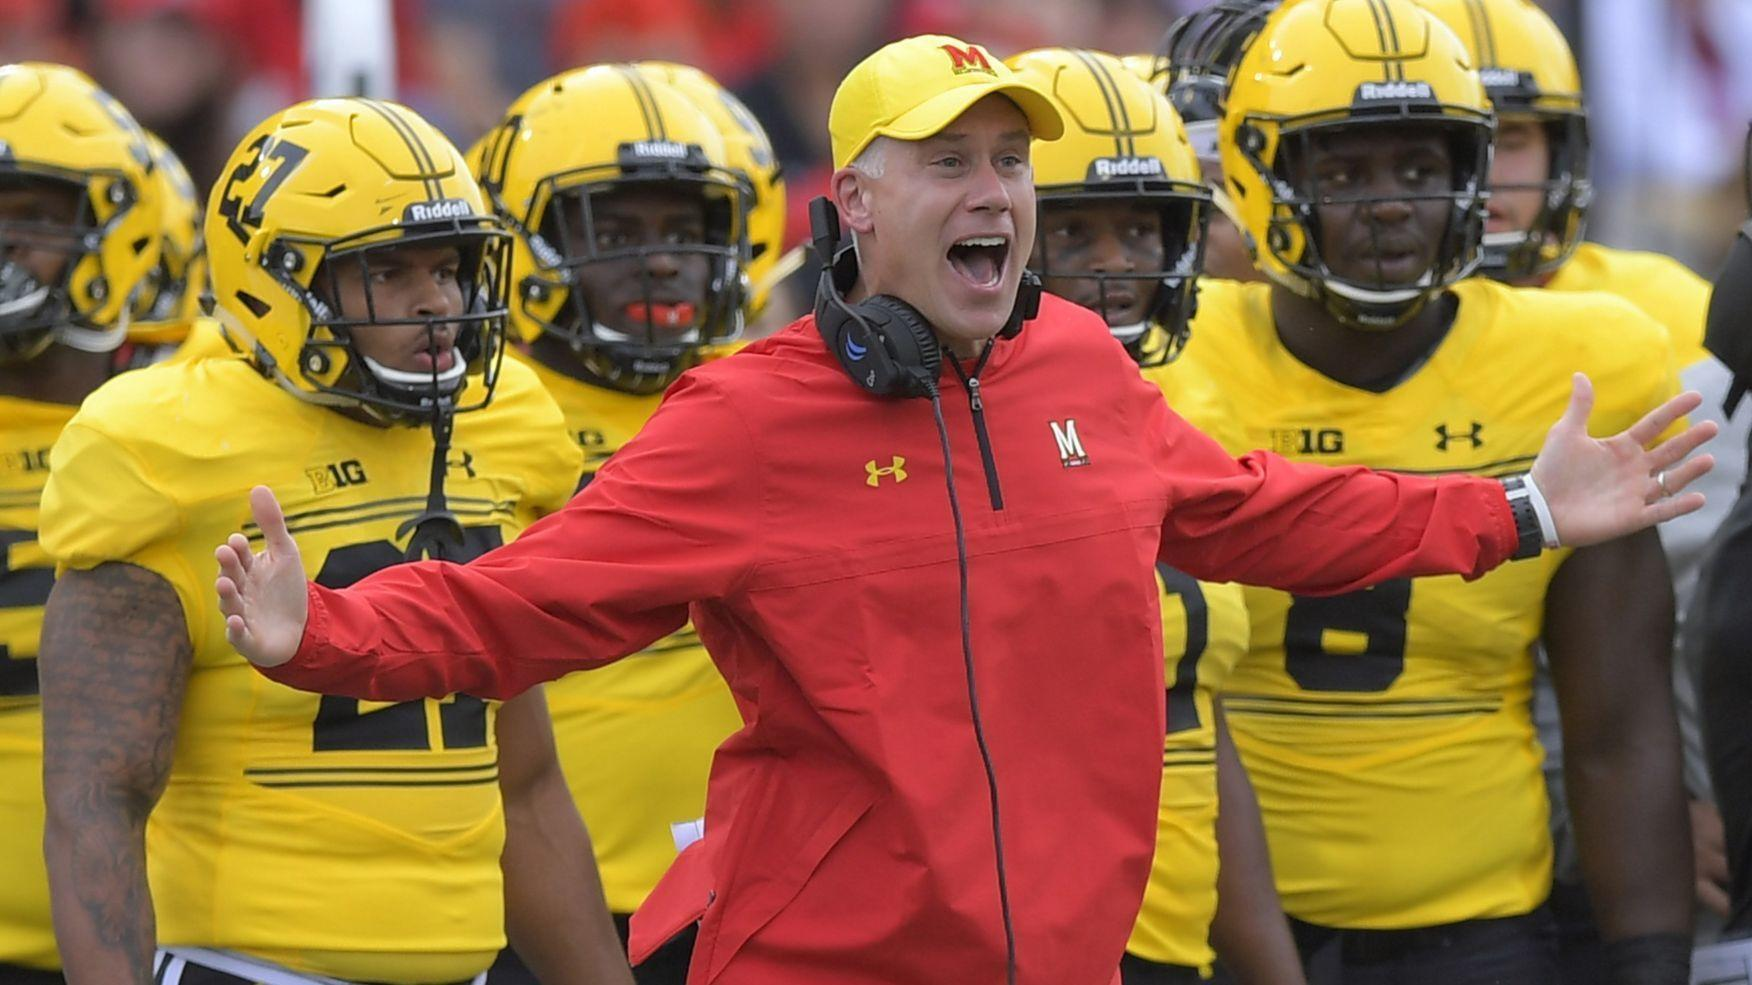 c8f17e350b735 Maryland football coach DJ Durkin remains on leave